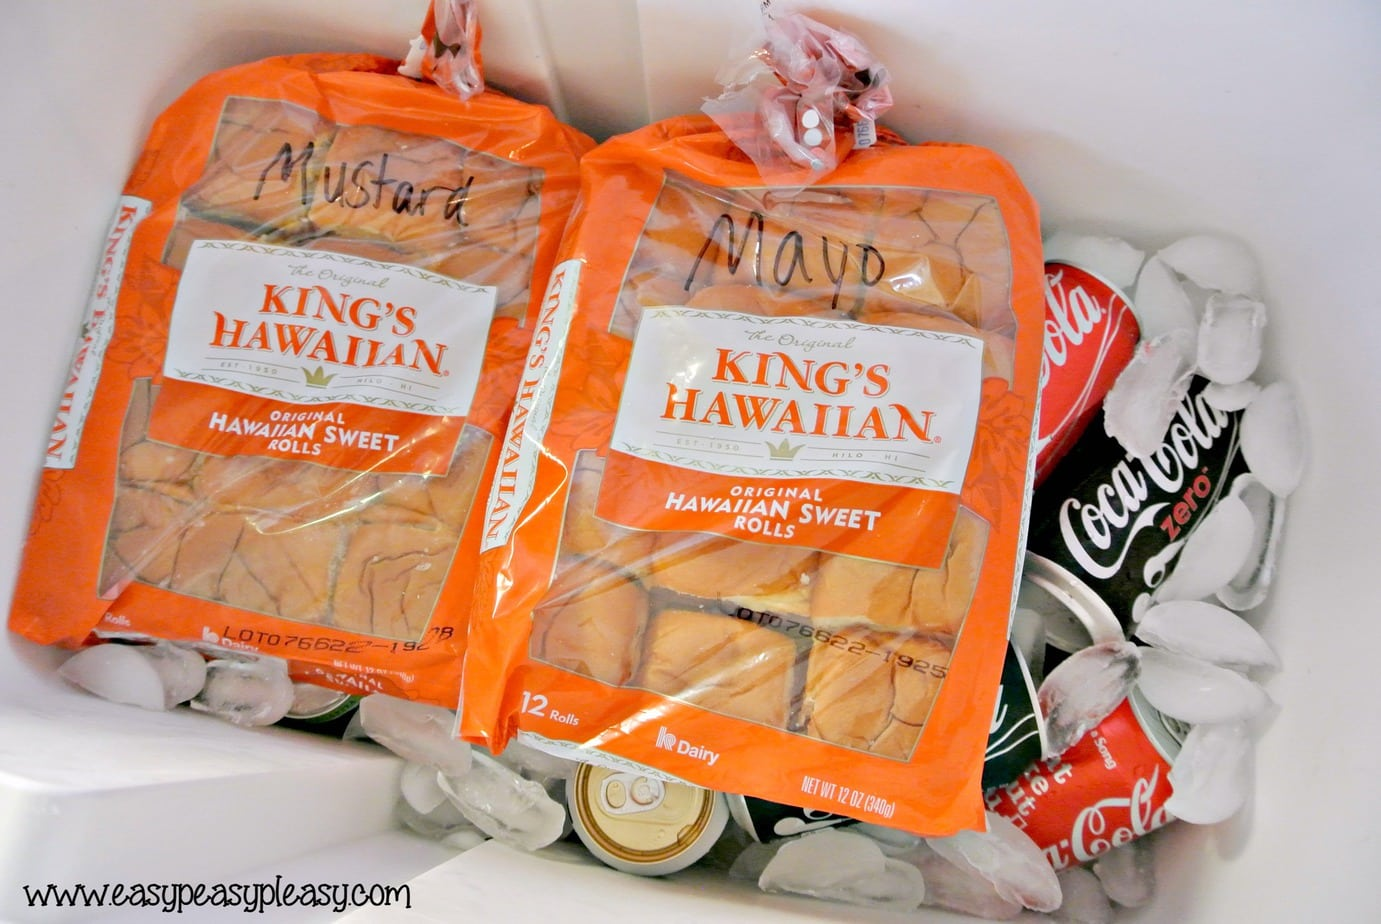 The easiest To Go Sandwiches for your cooler that require no cleanup when the fun is done!